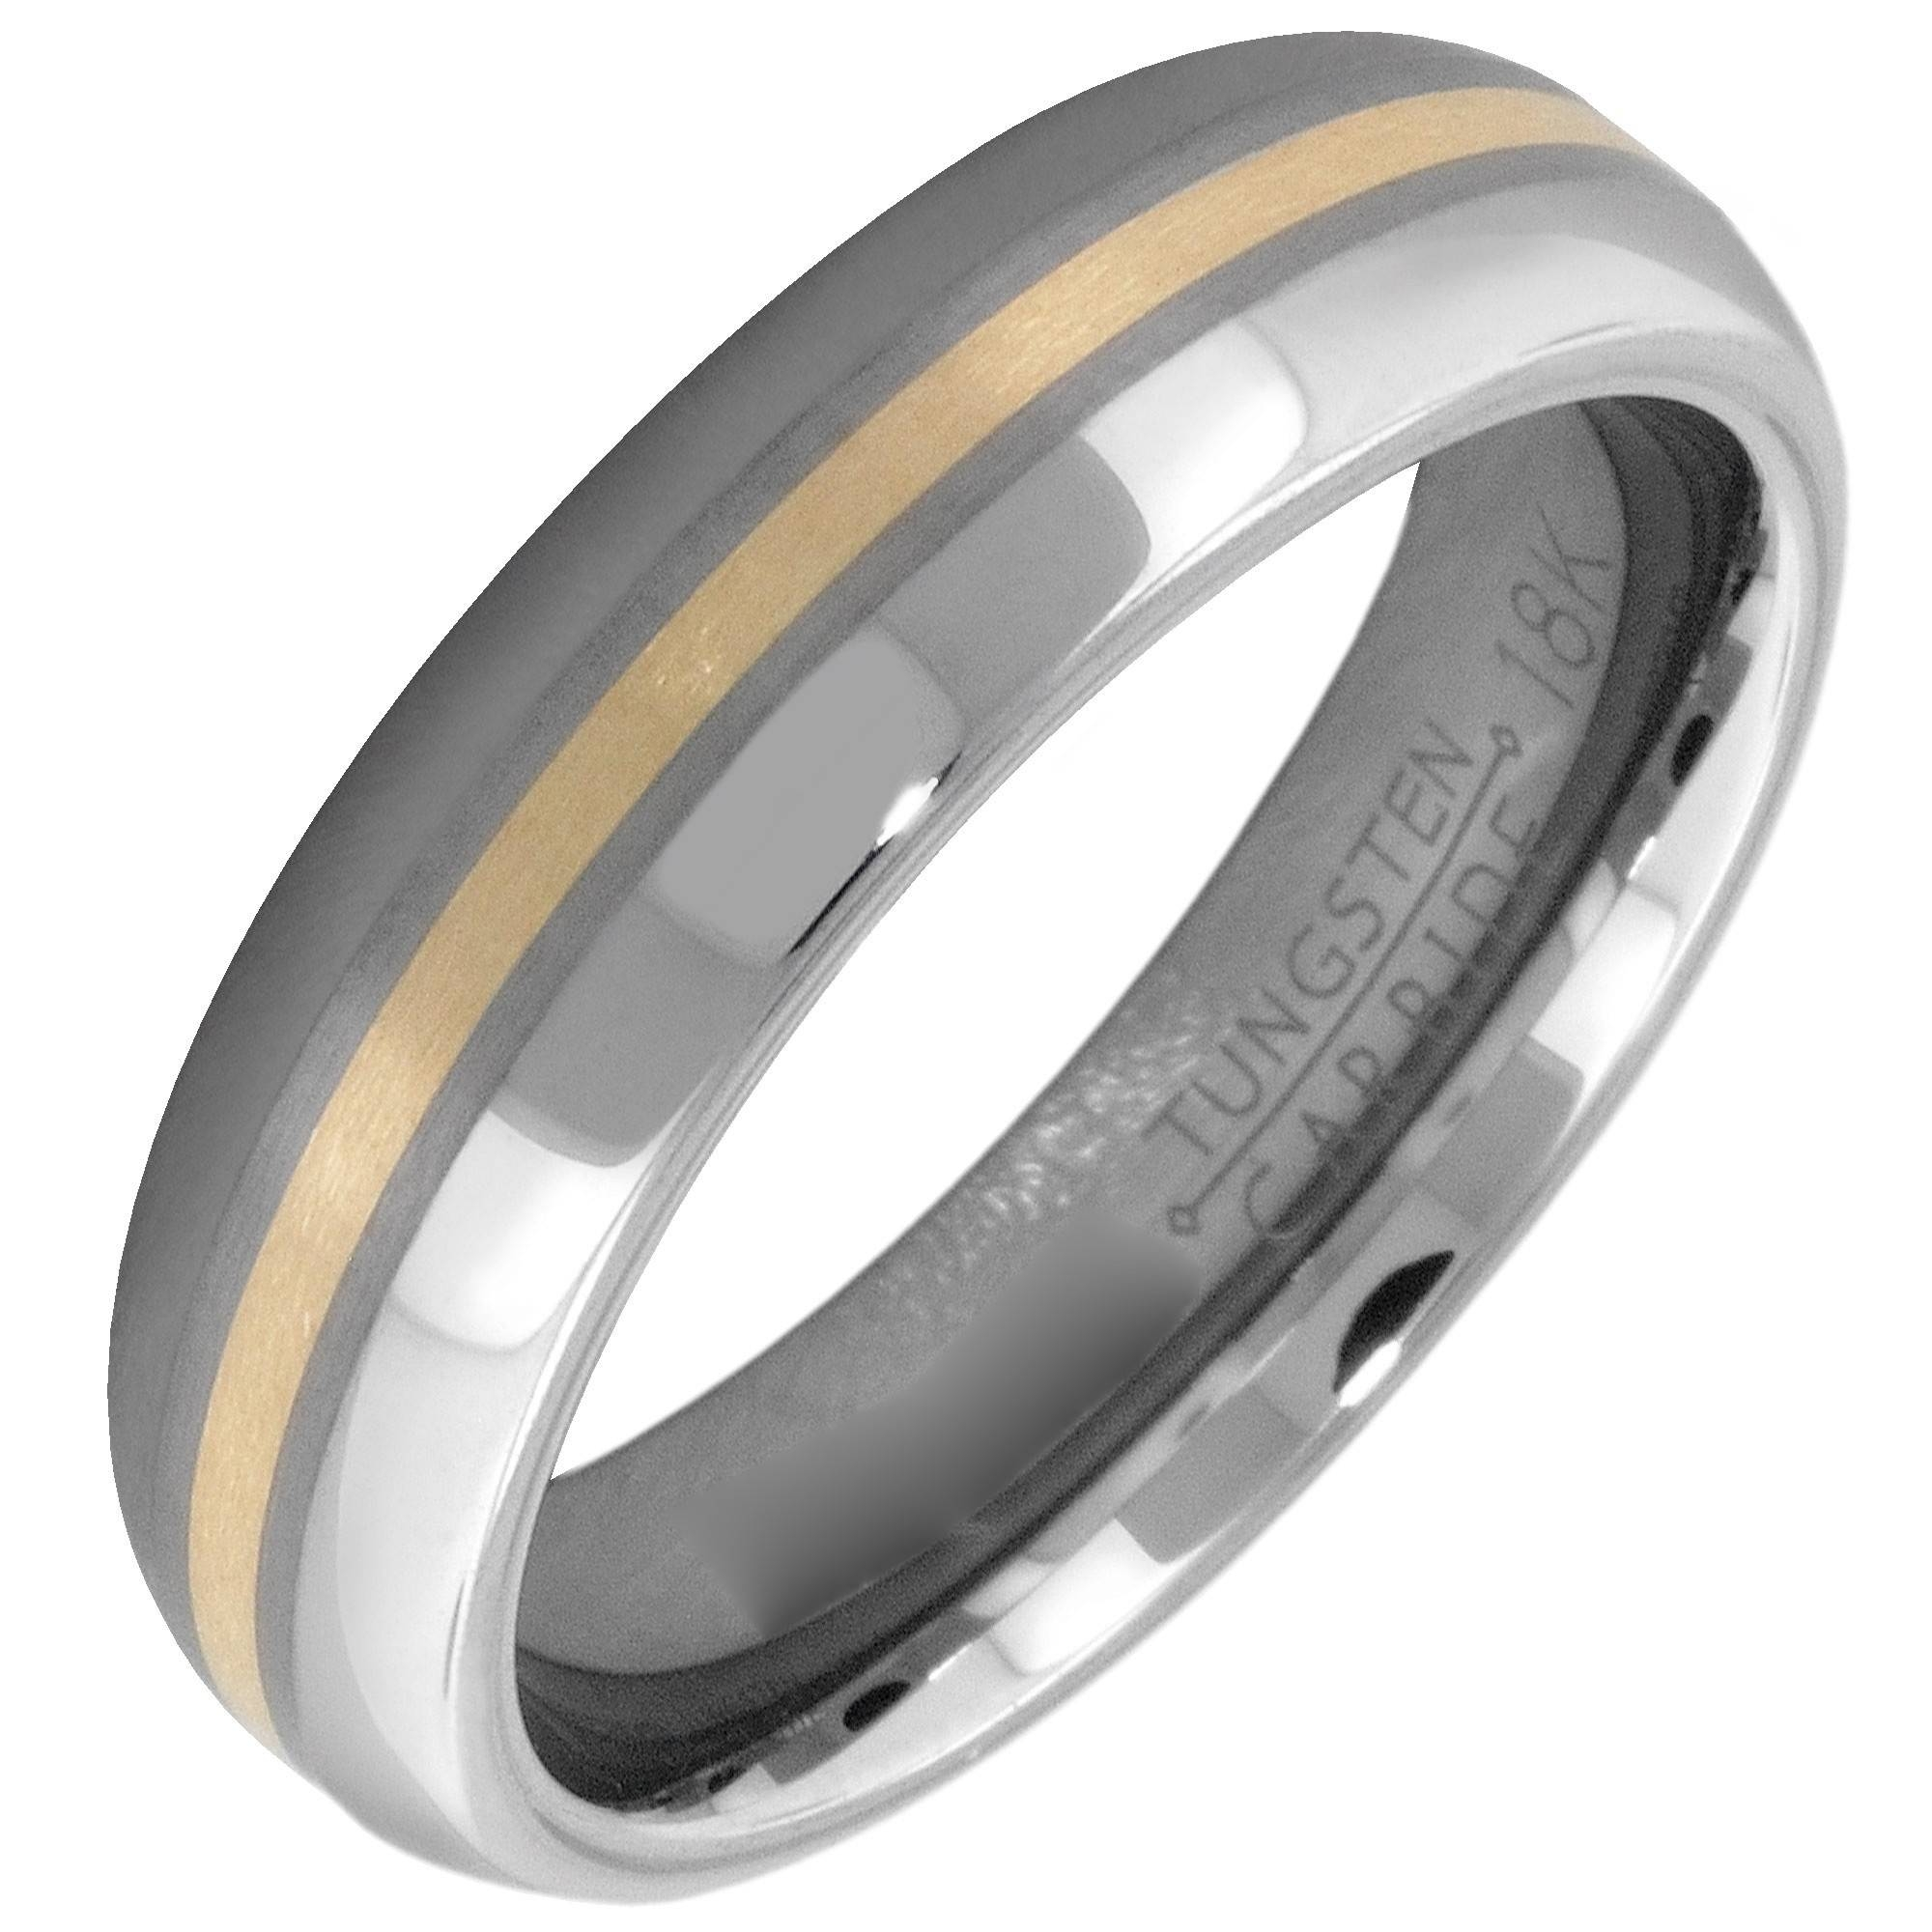 Artcarved Momento Mens Wedding Band In Tungsten Carbide (6mm) For Artcarved Men Wedding Bands (View 10 of 15)